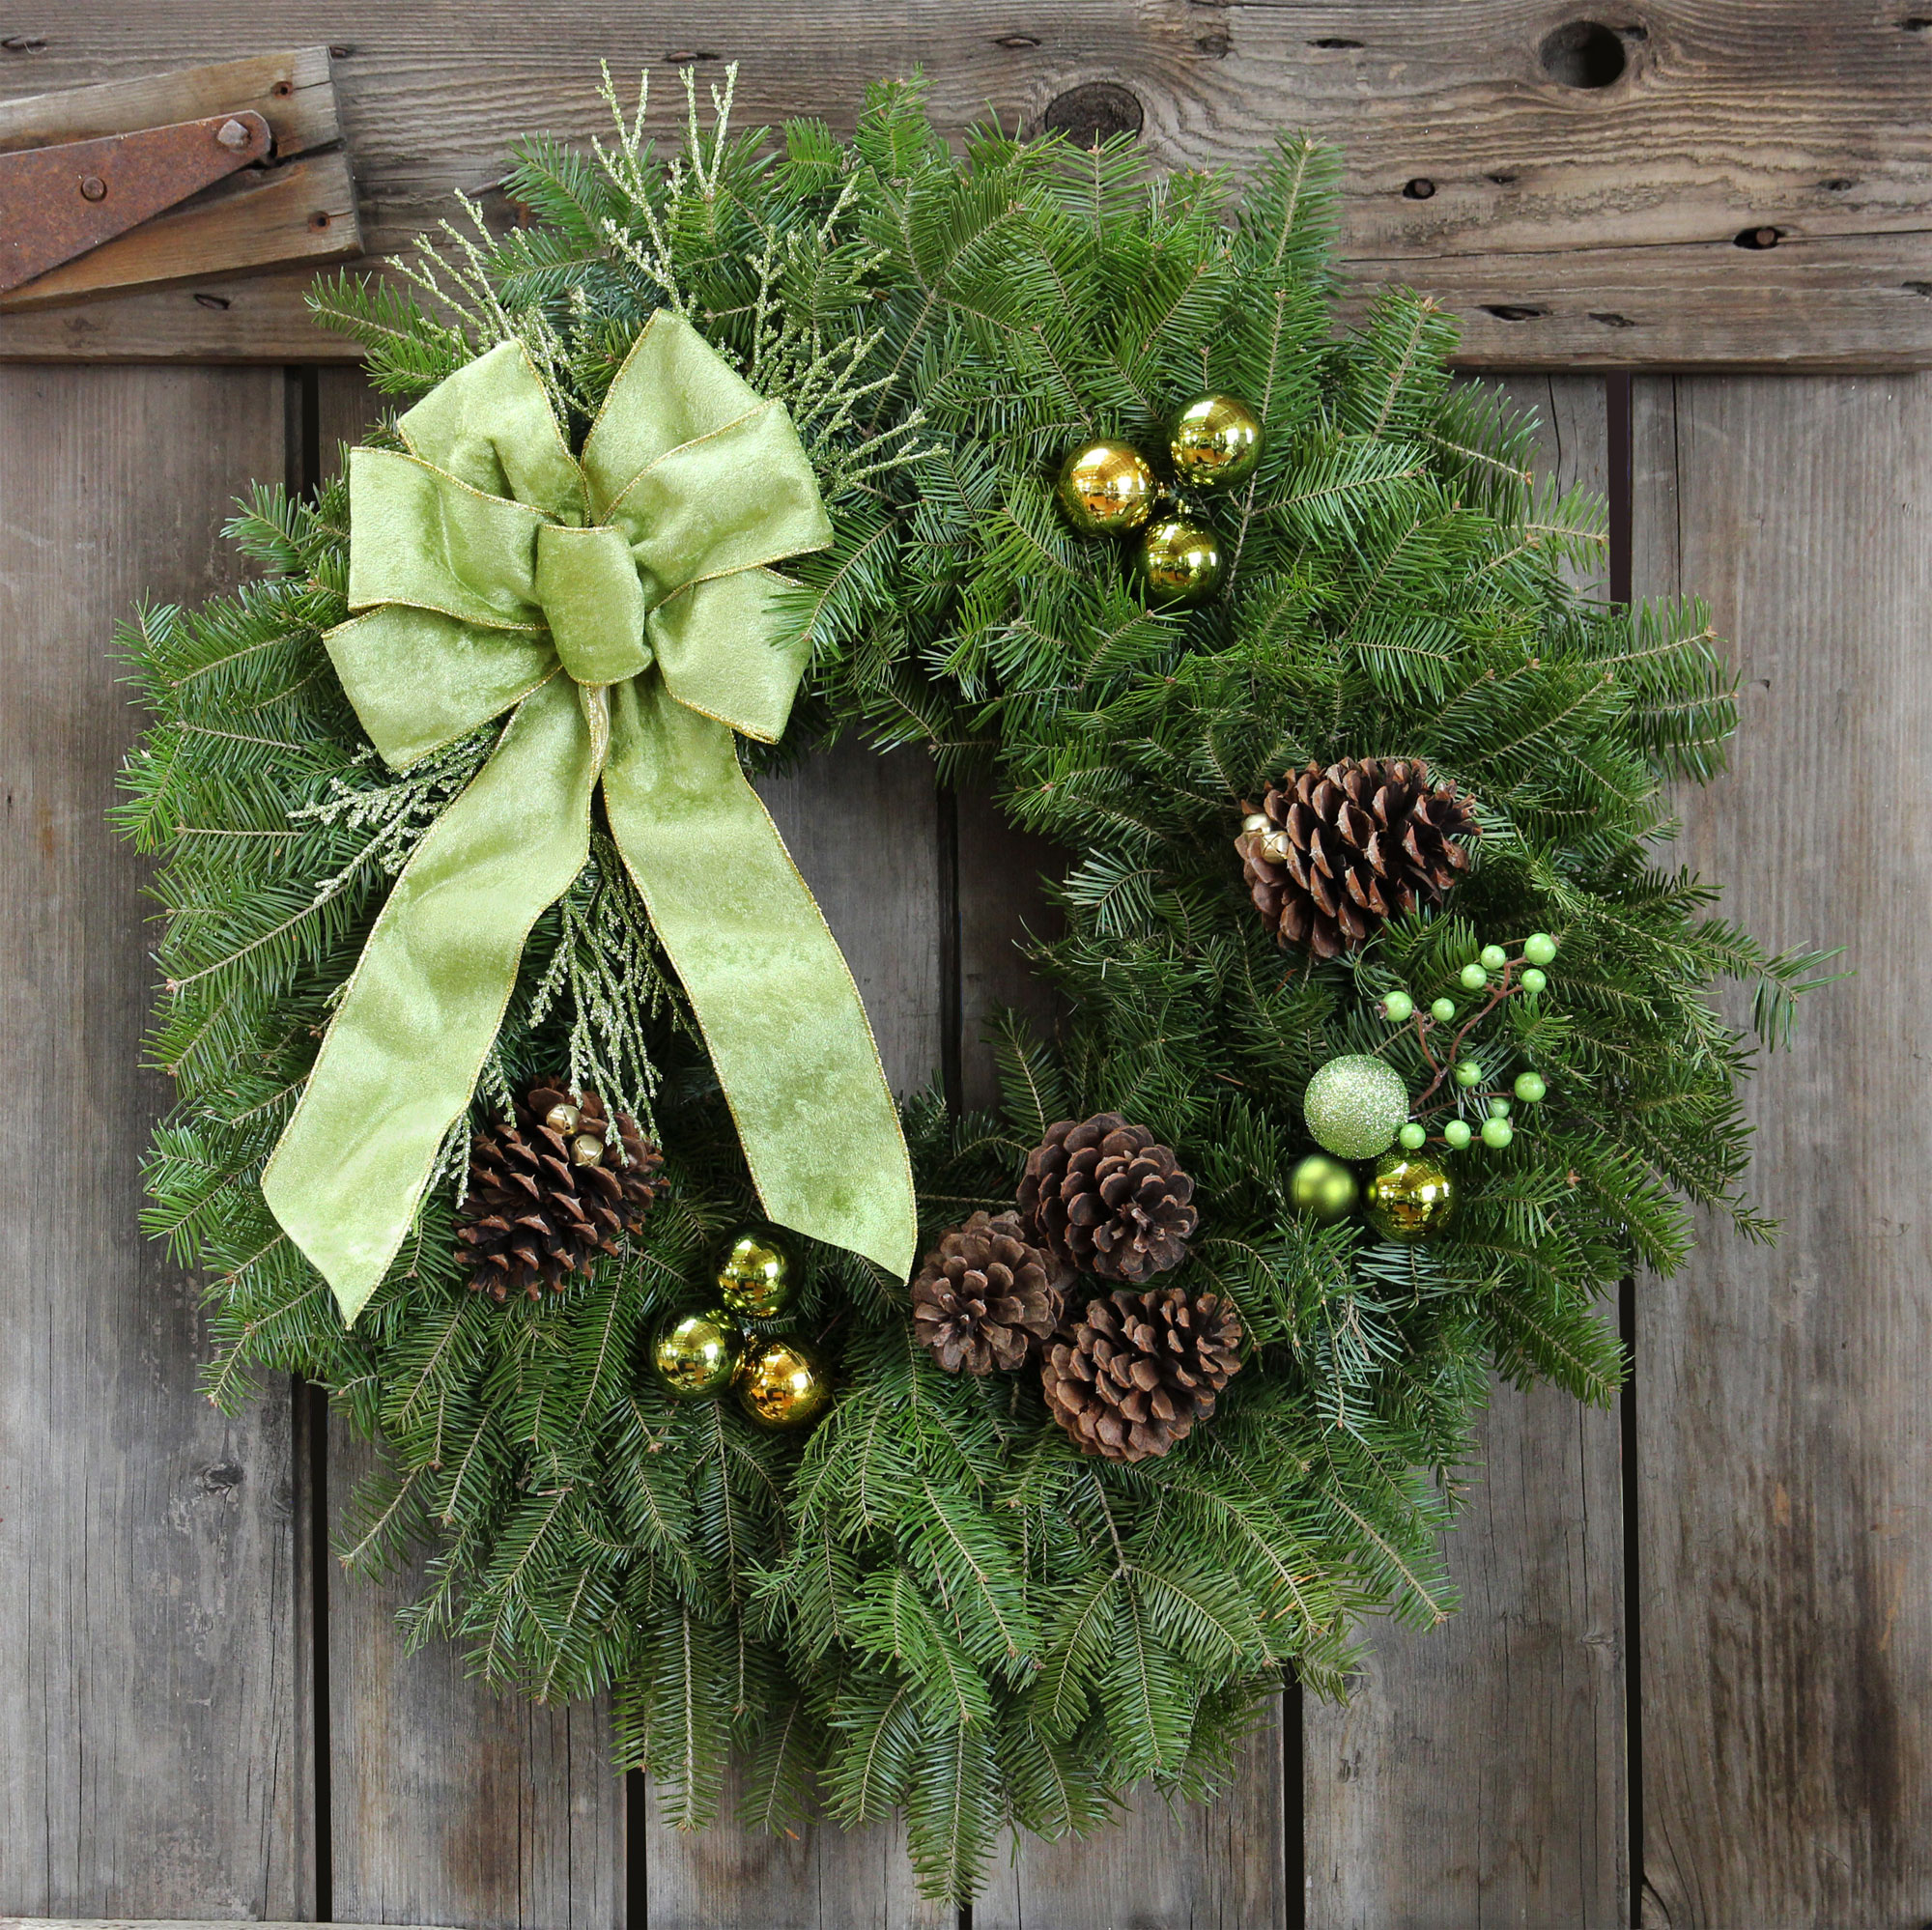 The truly unique look of these Holiday Evergreens will stand out in any neighborhood! The stylish green bow and trimmings are accented with bronzed cones laced with gold jingle bells.